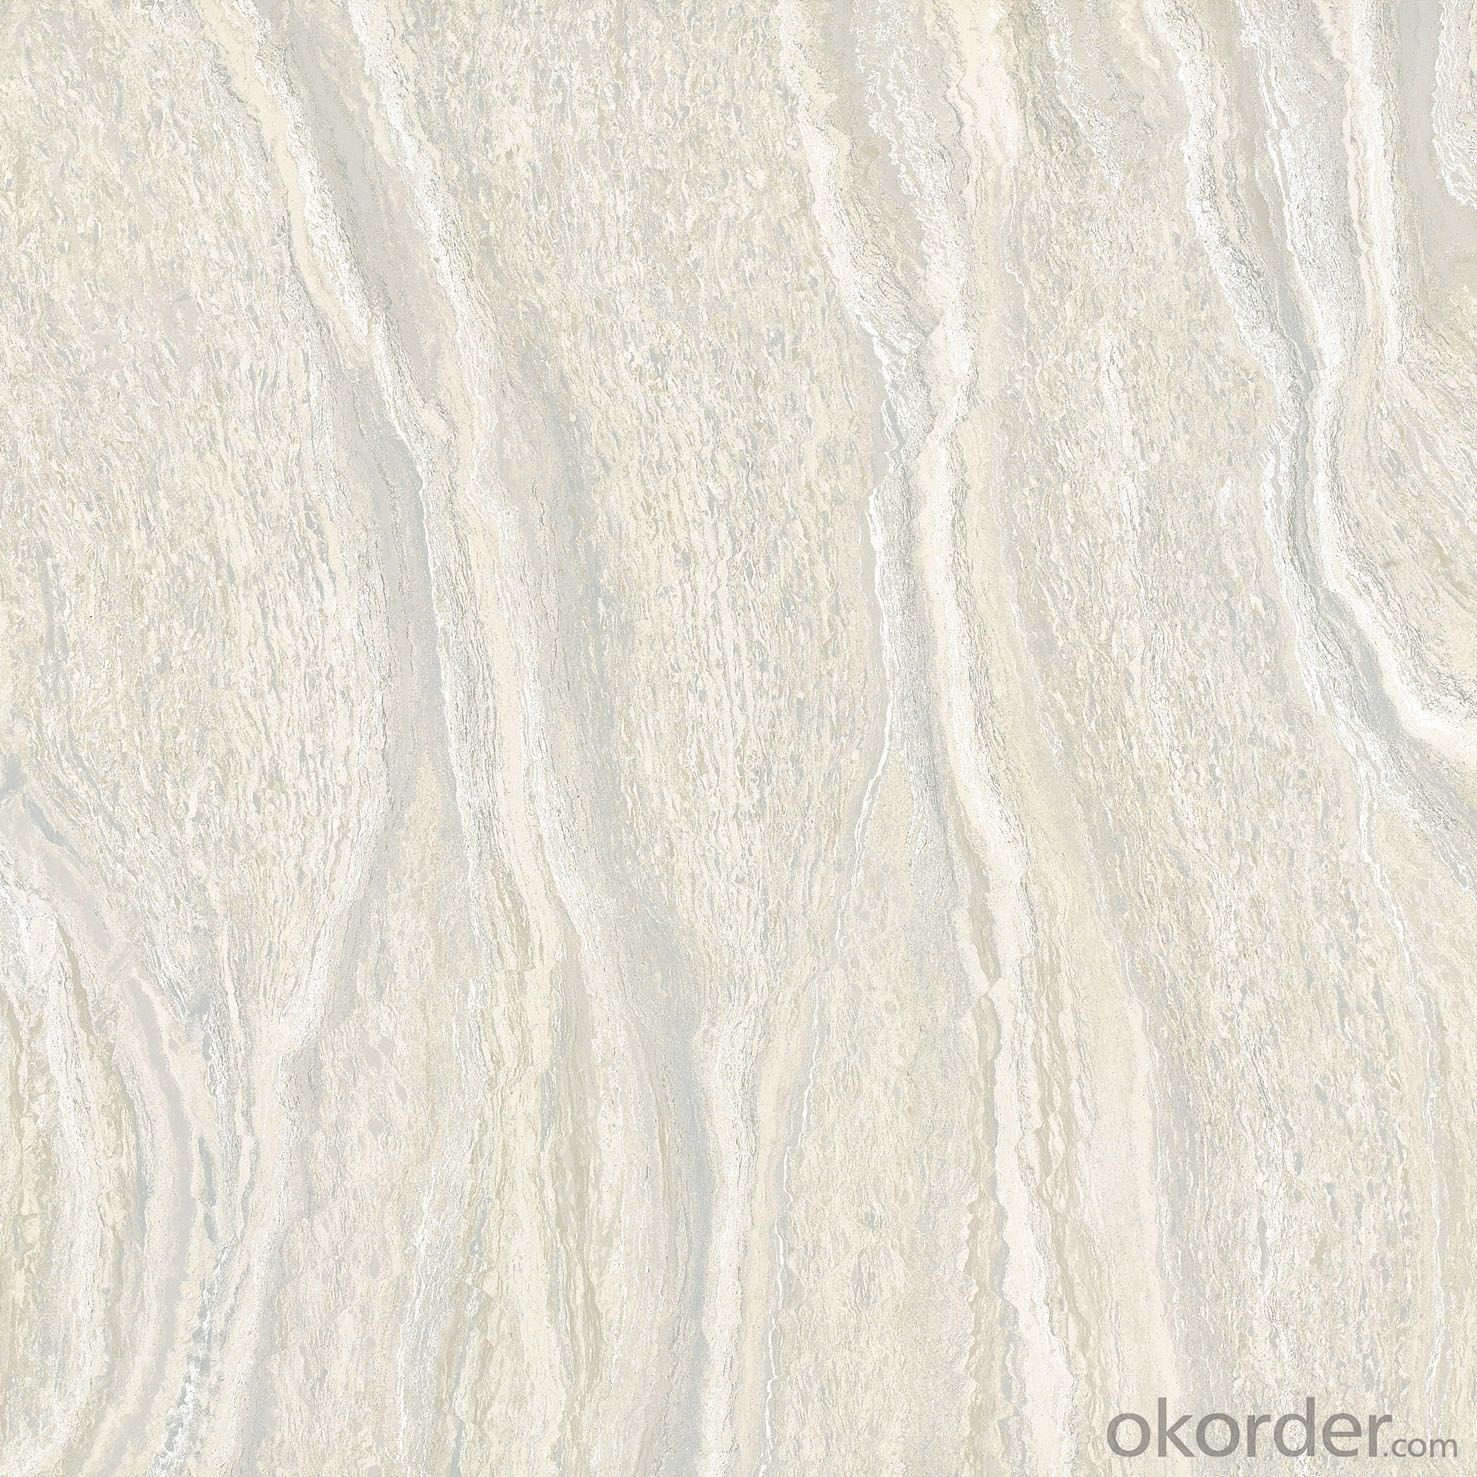 Polished Porcelain Tile Amazon series AM6003/6004